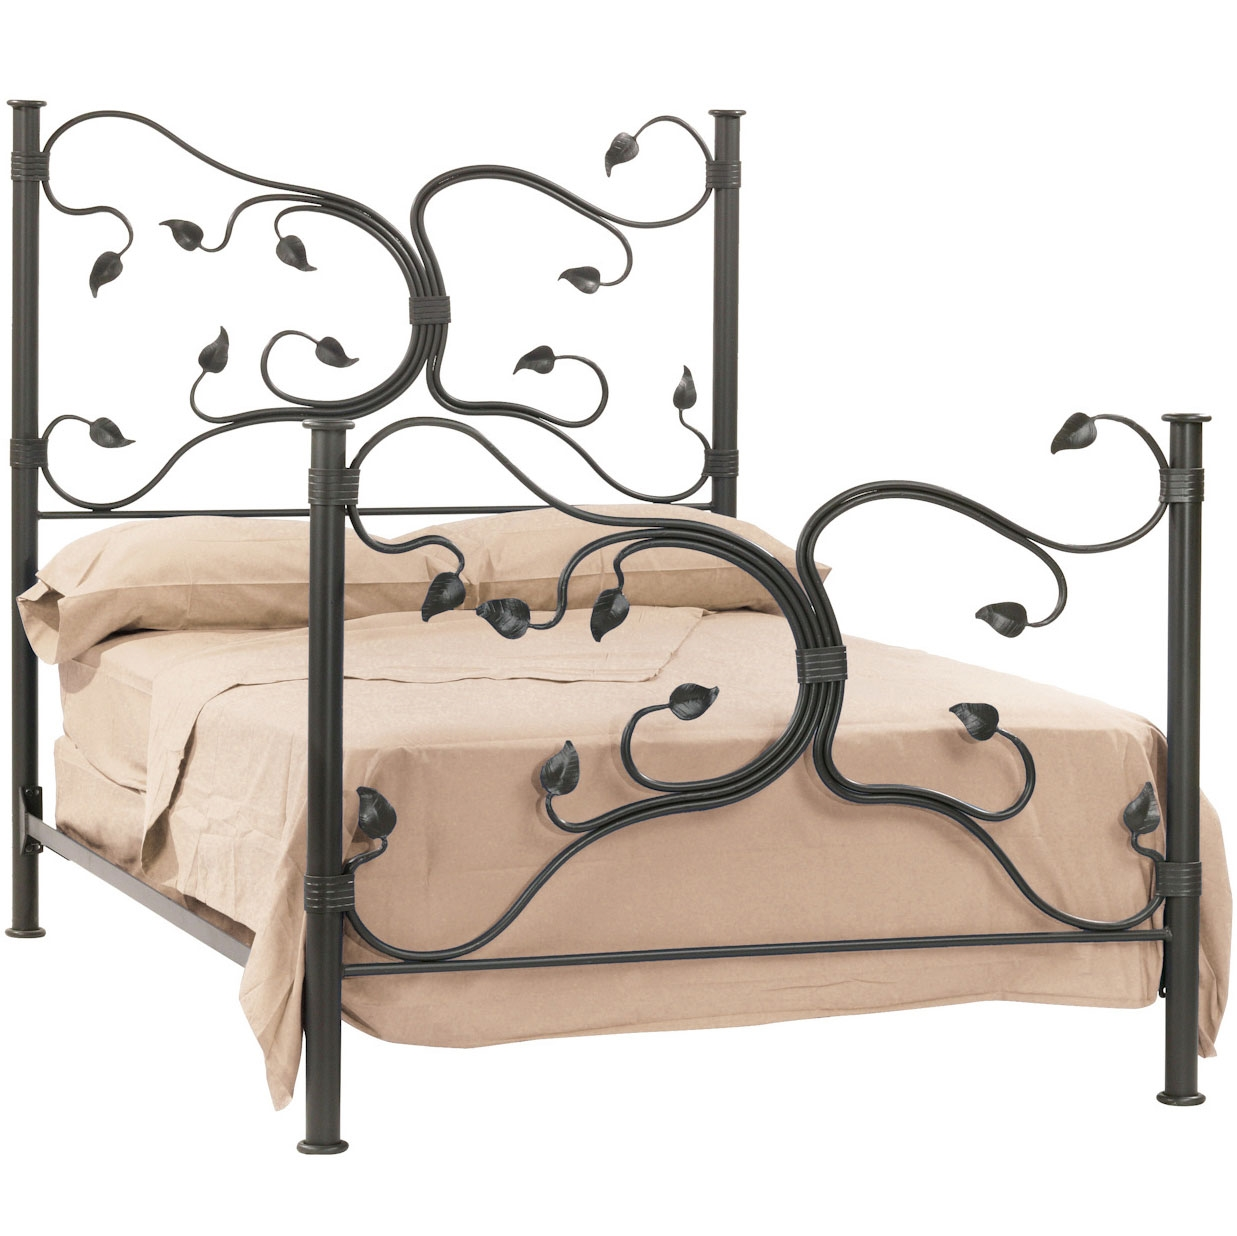 eden isle wrought iron headboard  twin, full, queen and king, Headboard designs